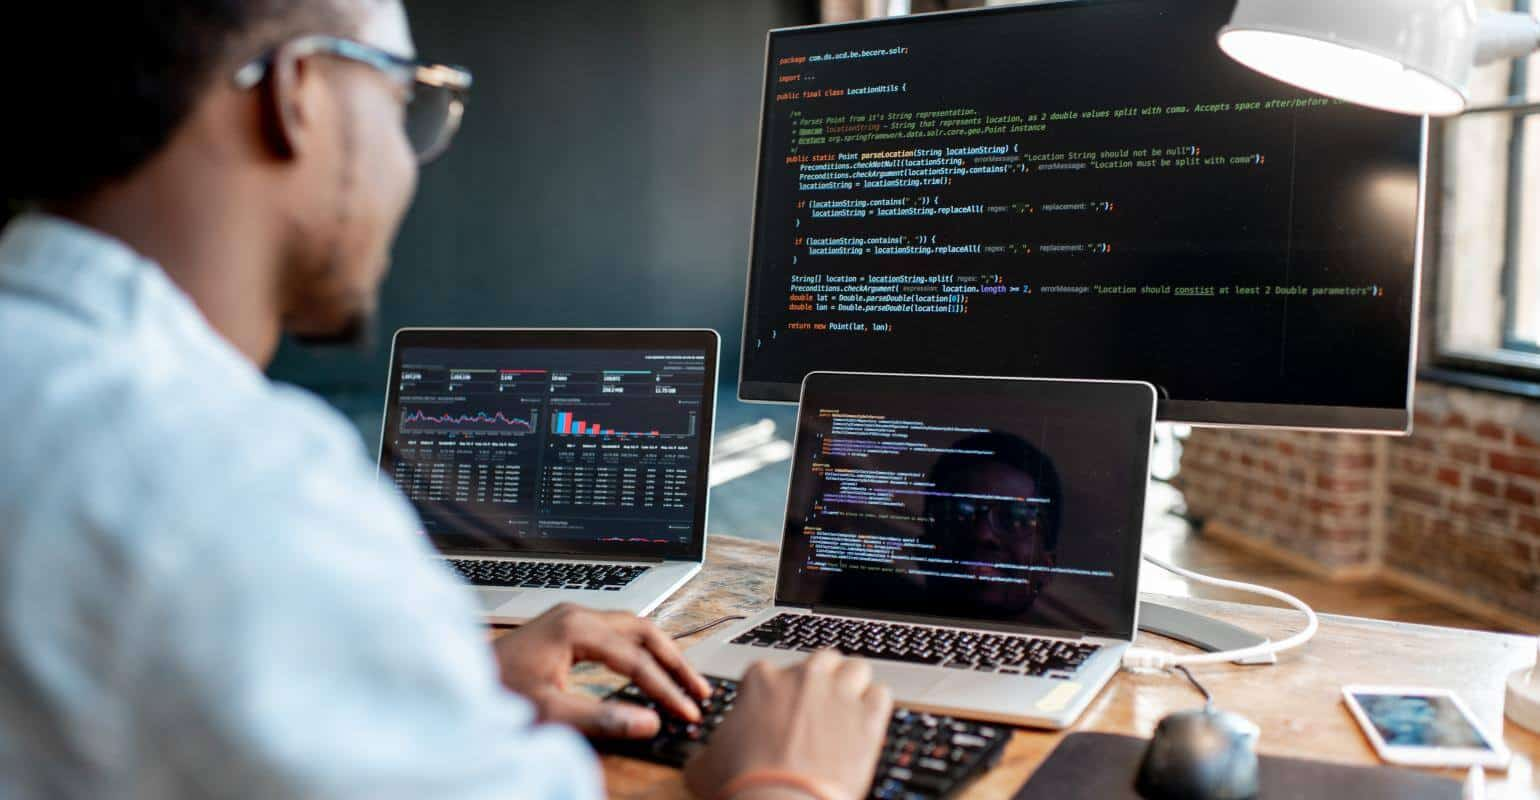 Develop Amazing Software With This Software Developer Certification Bundle